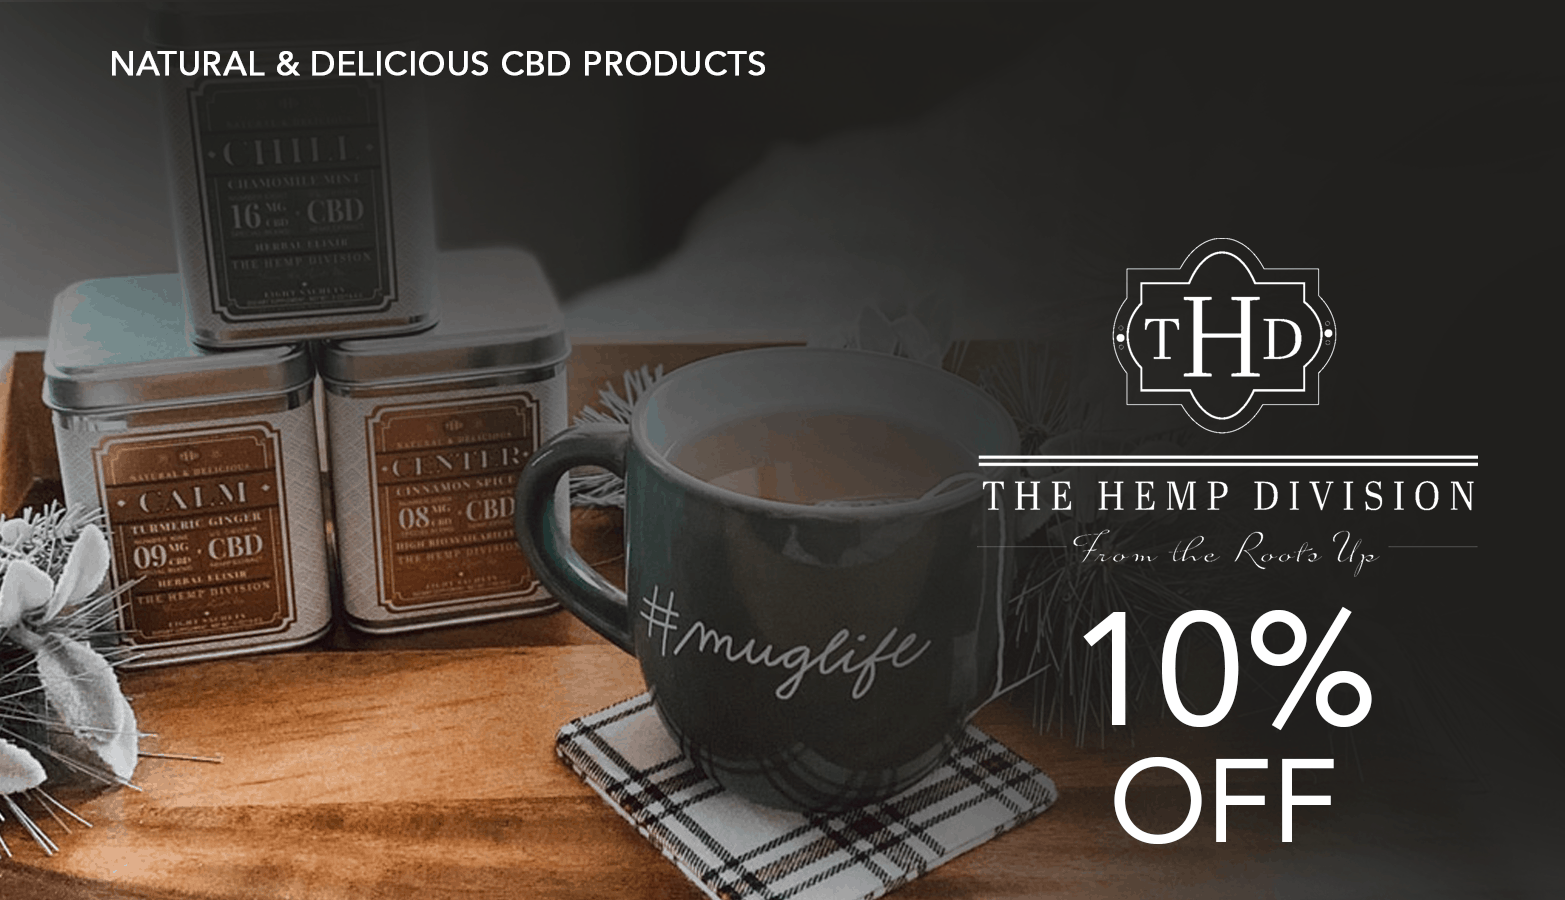 The Hemp Division CBD Coupon Code Offer Website